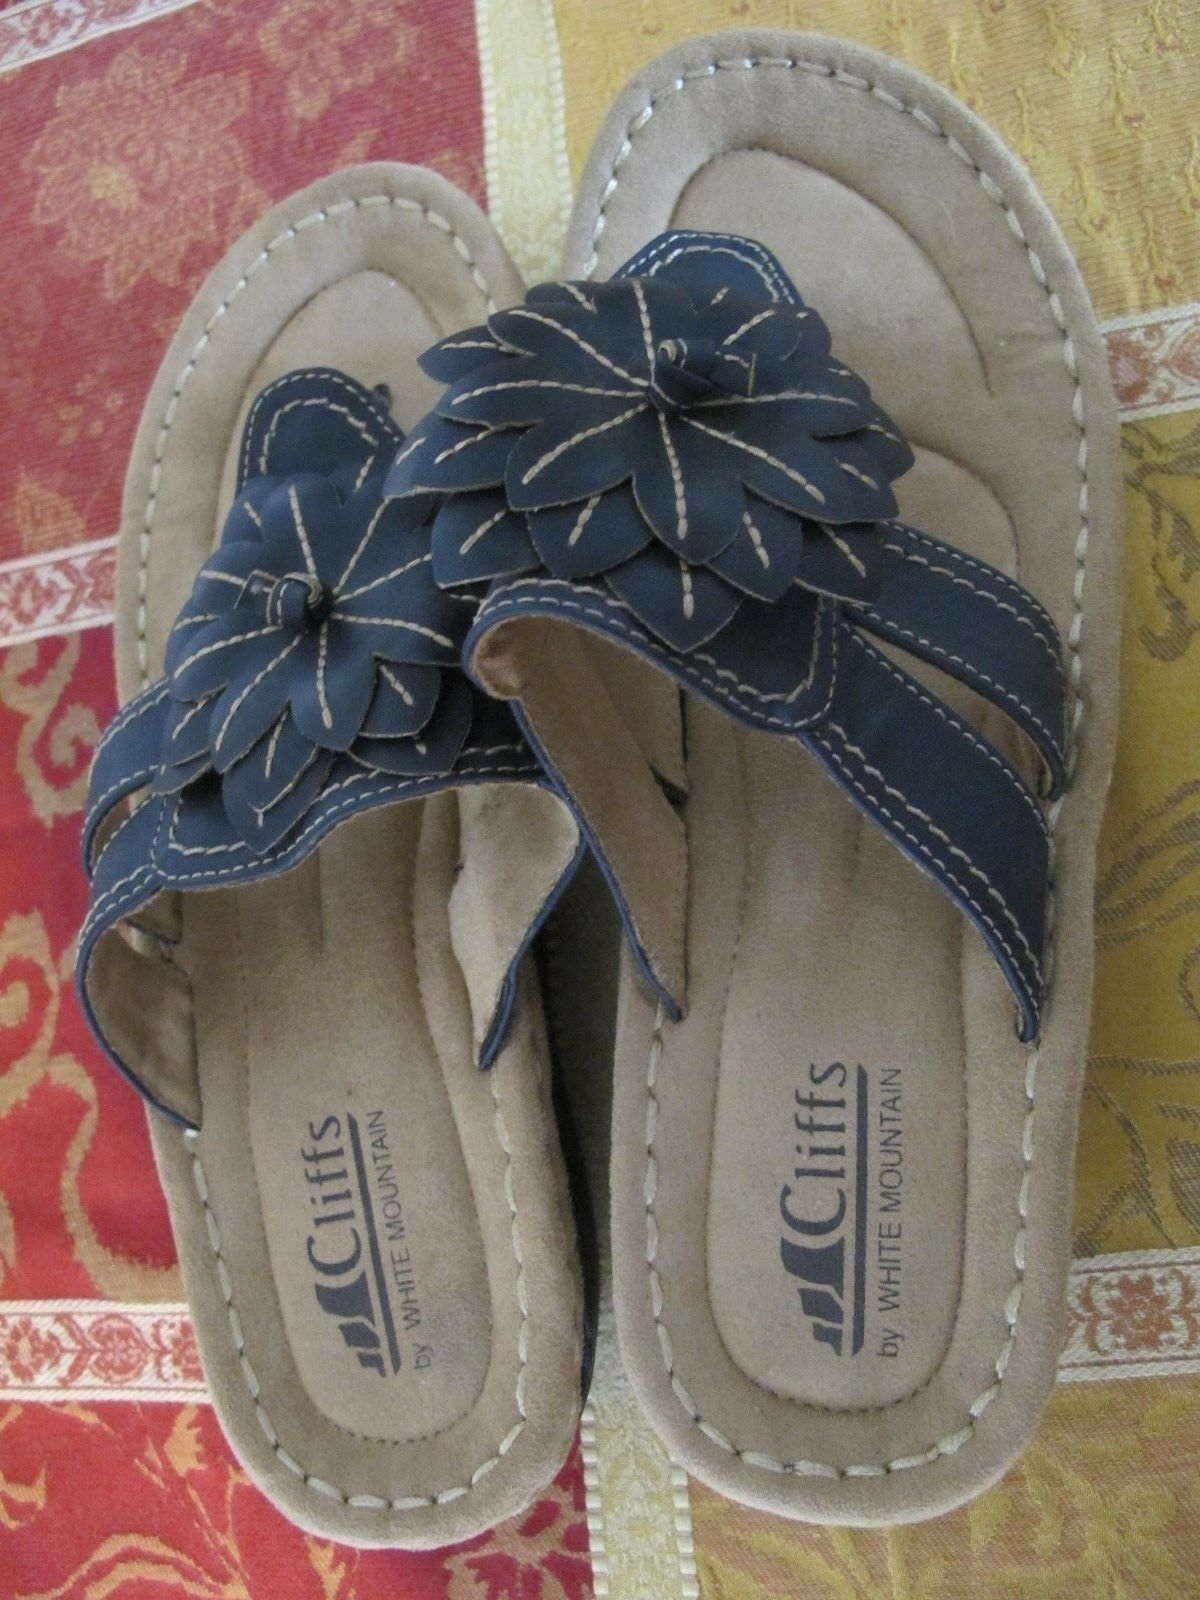 Cliffs By White Mountain Cove Black Thong Sandals Size 9 M